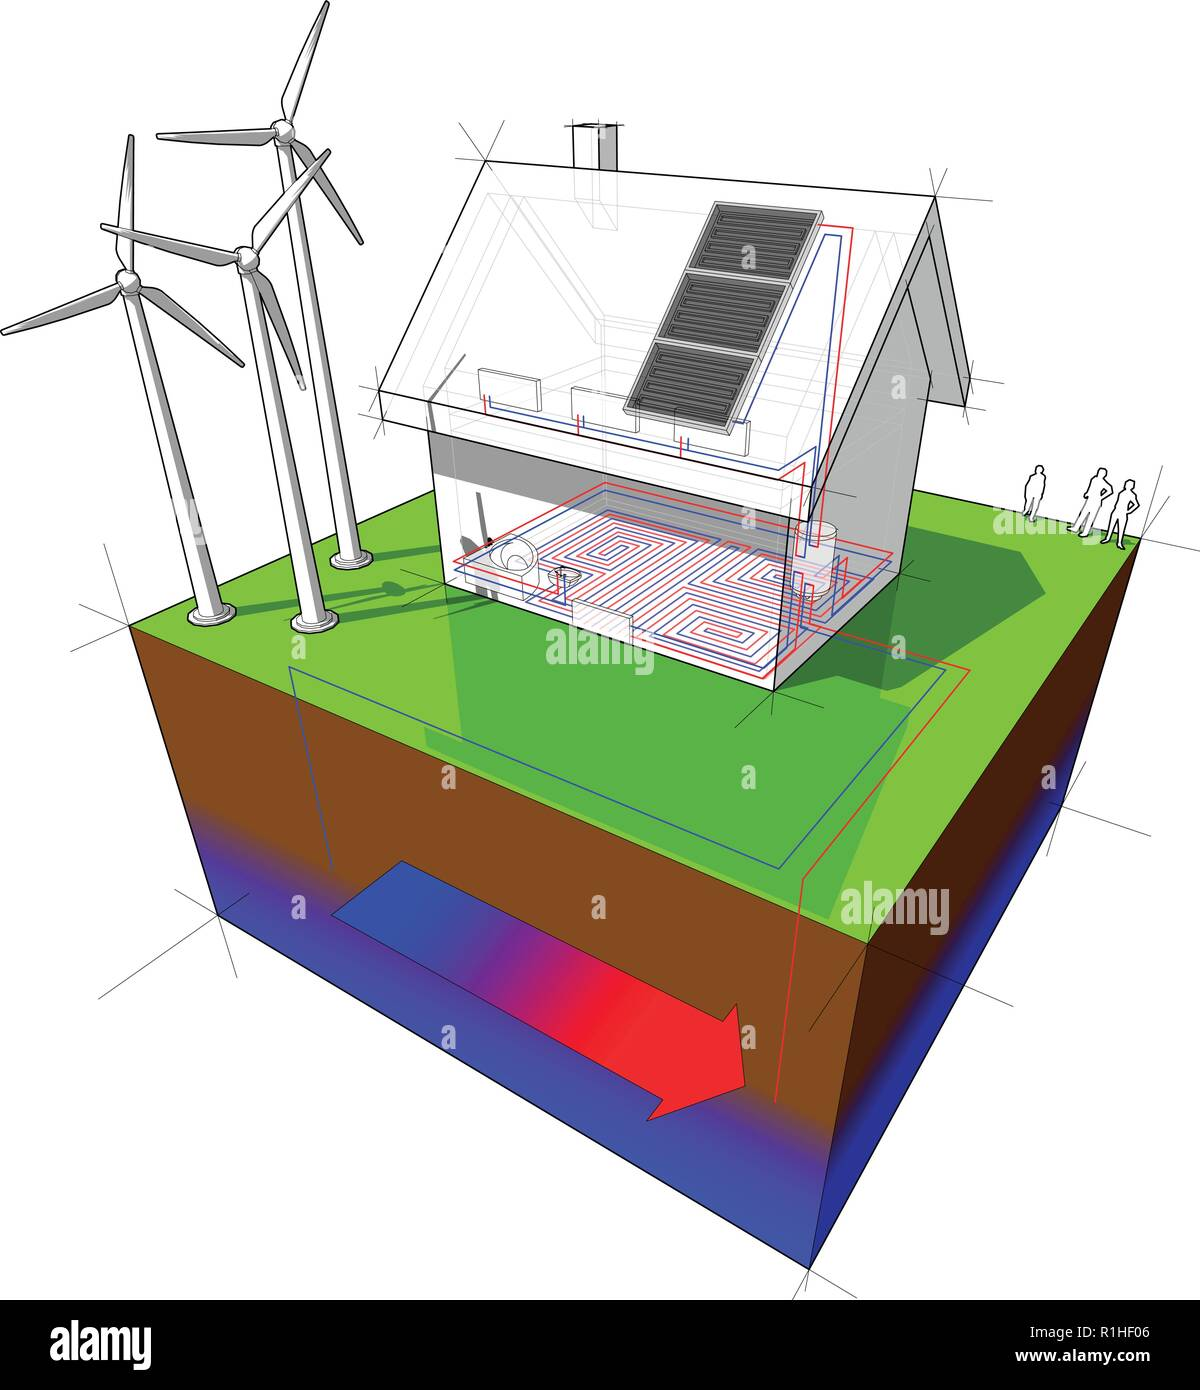 diagram of a detached  house with floor heating on the ground floor and radiators on the first floor and geothermal source heat pump and solar panels - Stock Vector